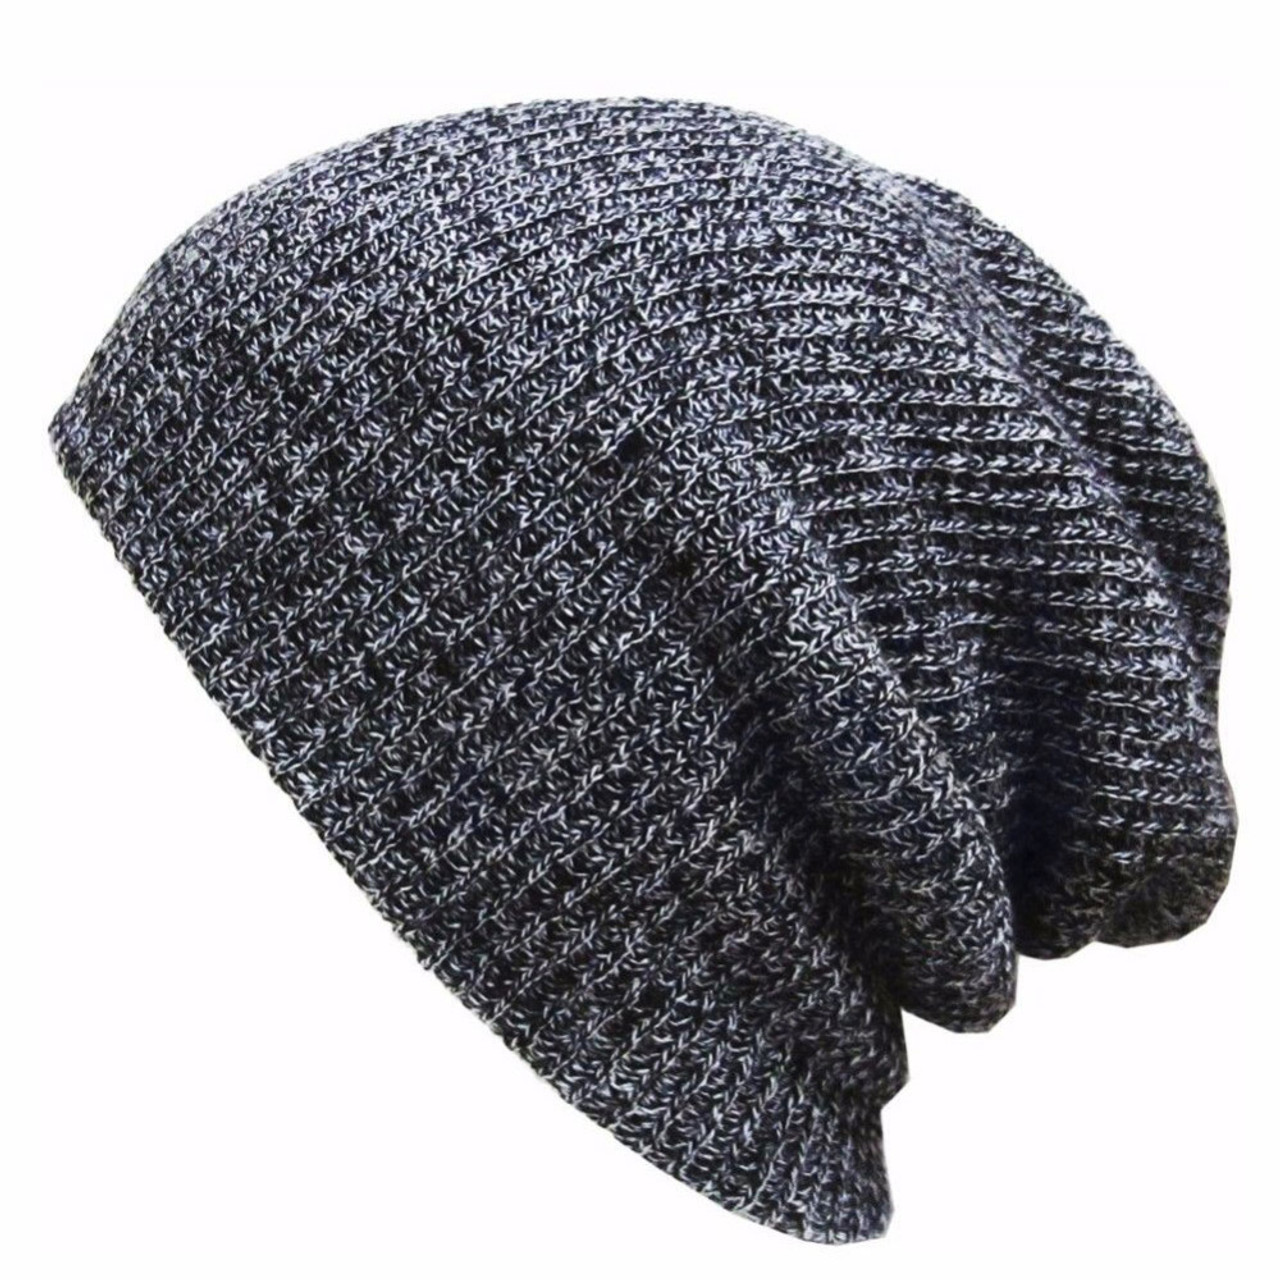 60e1c07453c ... 2017 Fashion Beanies Solid Color Hat Unisex Plain Warm Soft Beanie  Skull Knit Cap Hats Knitted ...